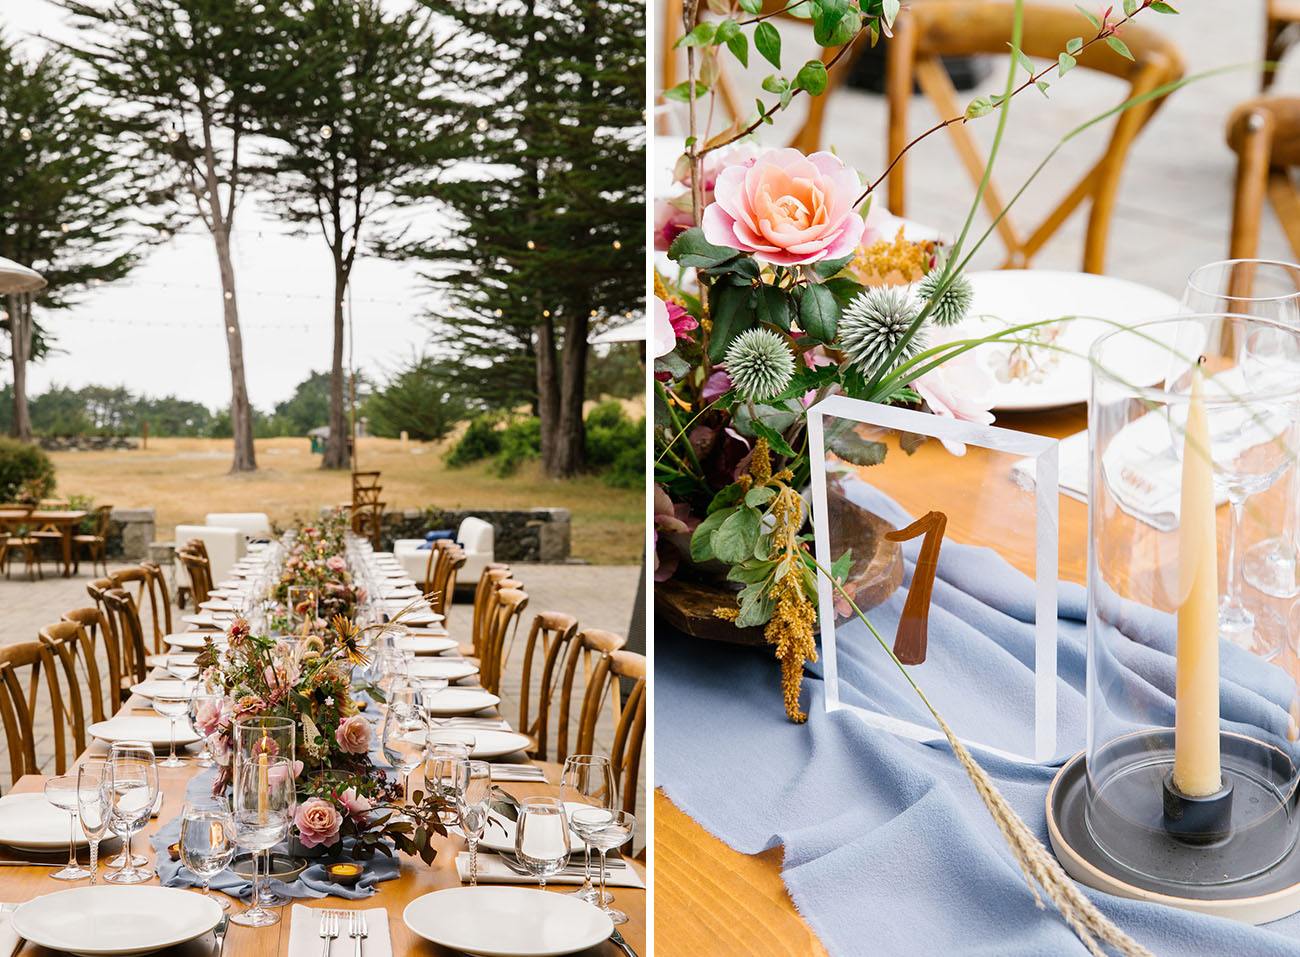 Stylish Mendocino CA wedding